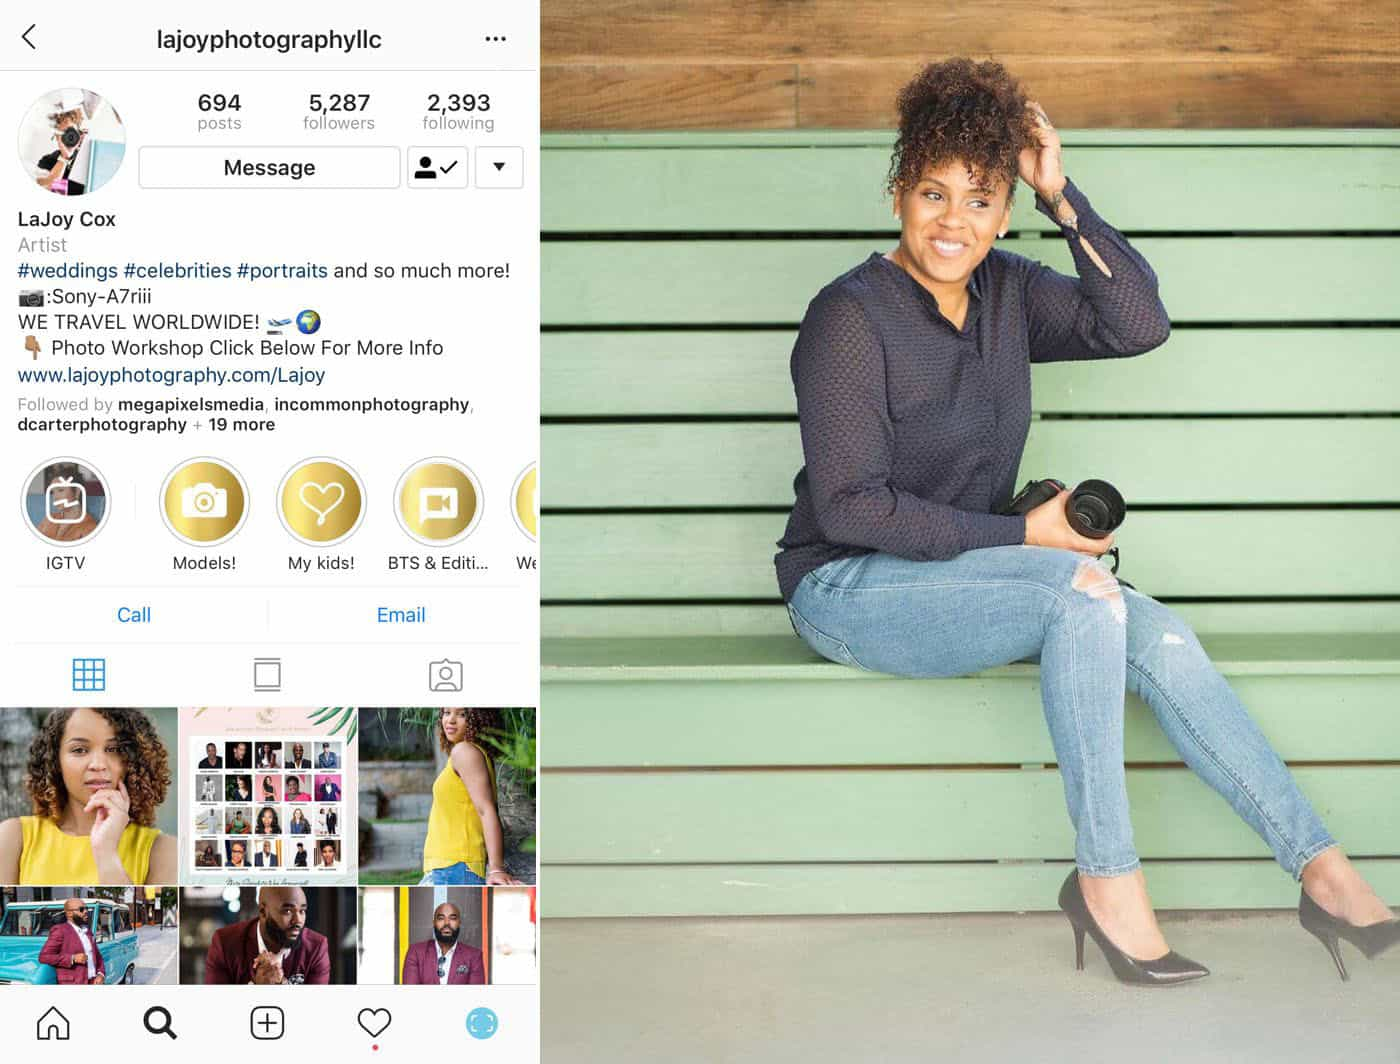 3 Simple Approaches To A Powerful Instagram Portfolio: LaJoy Cox on Instagram